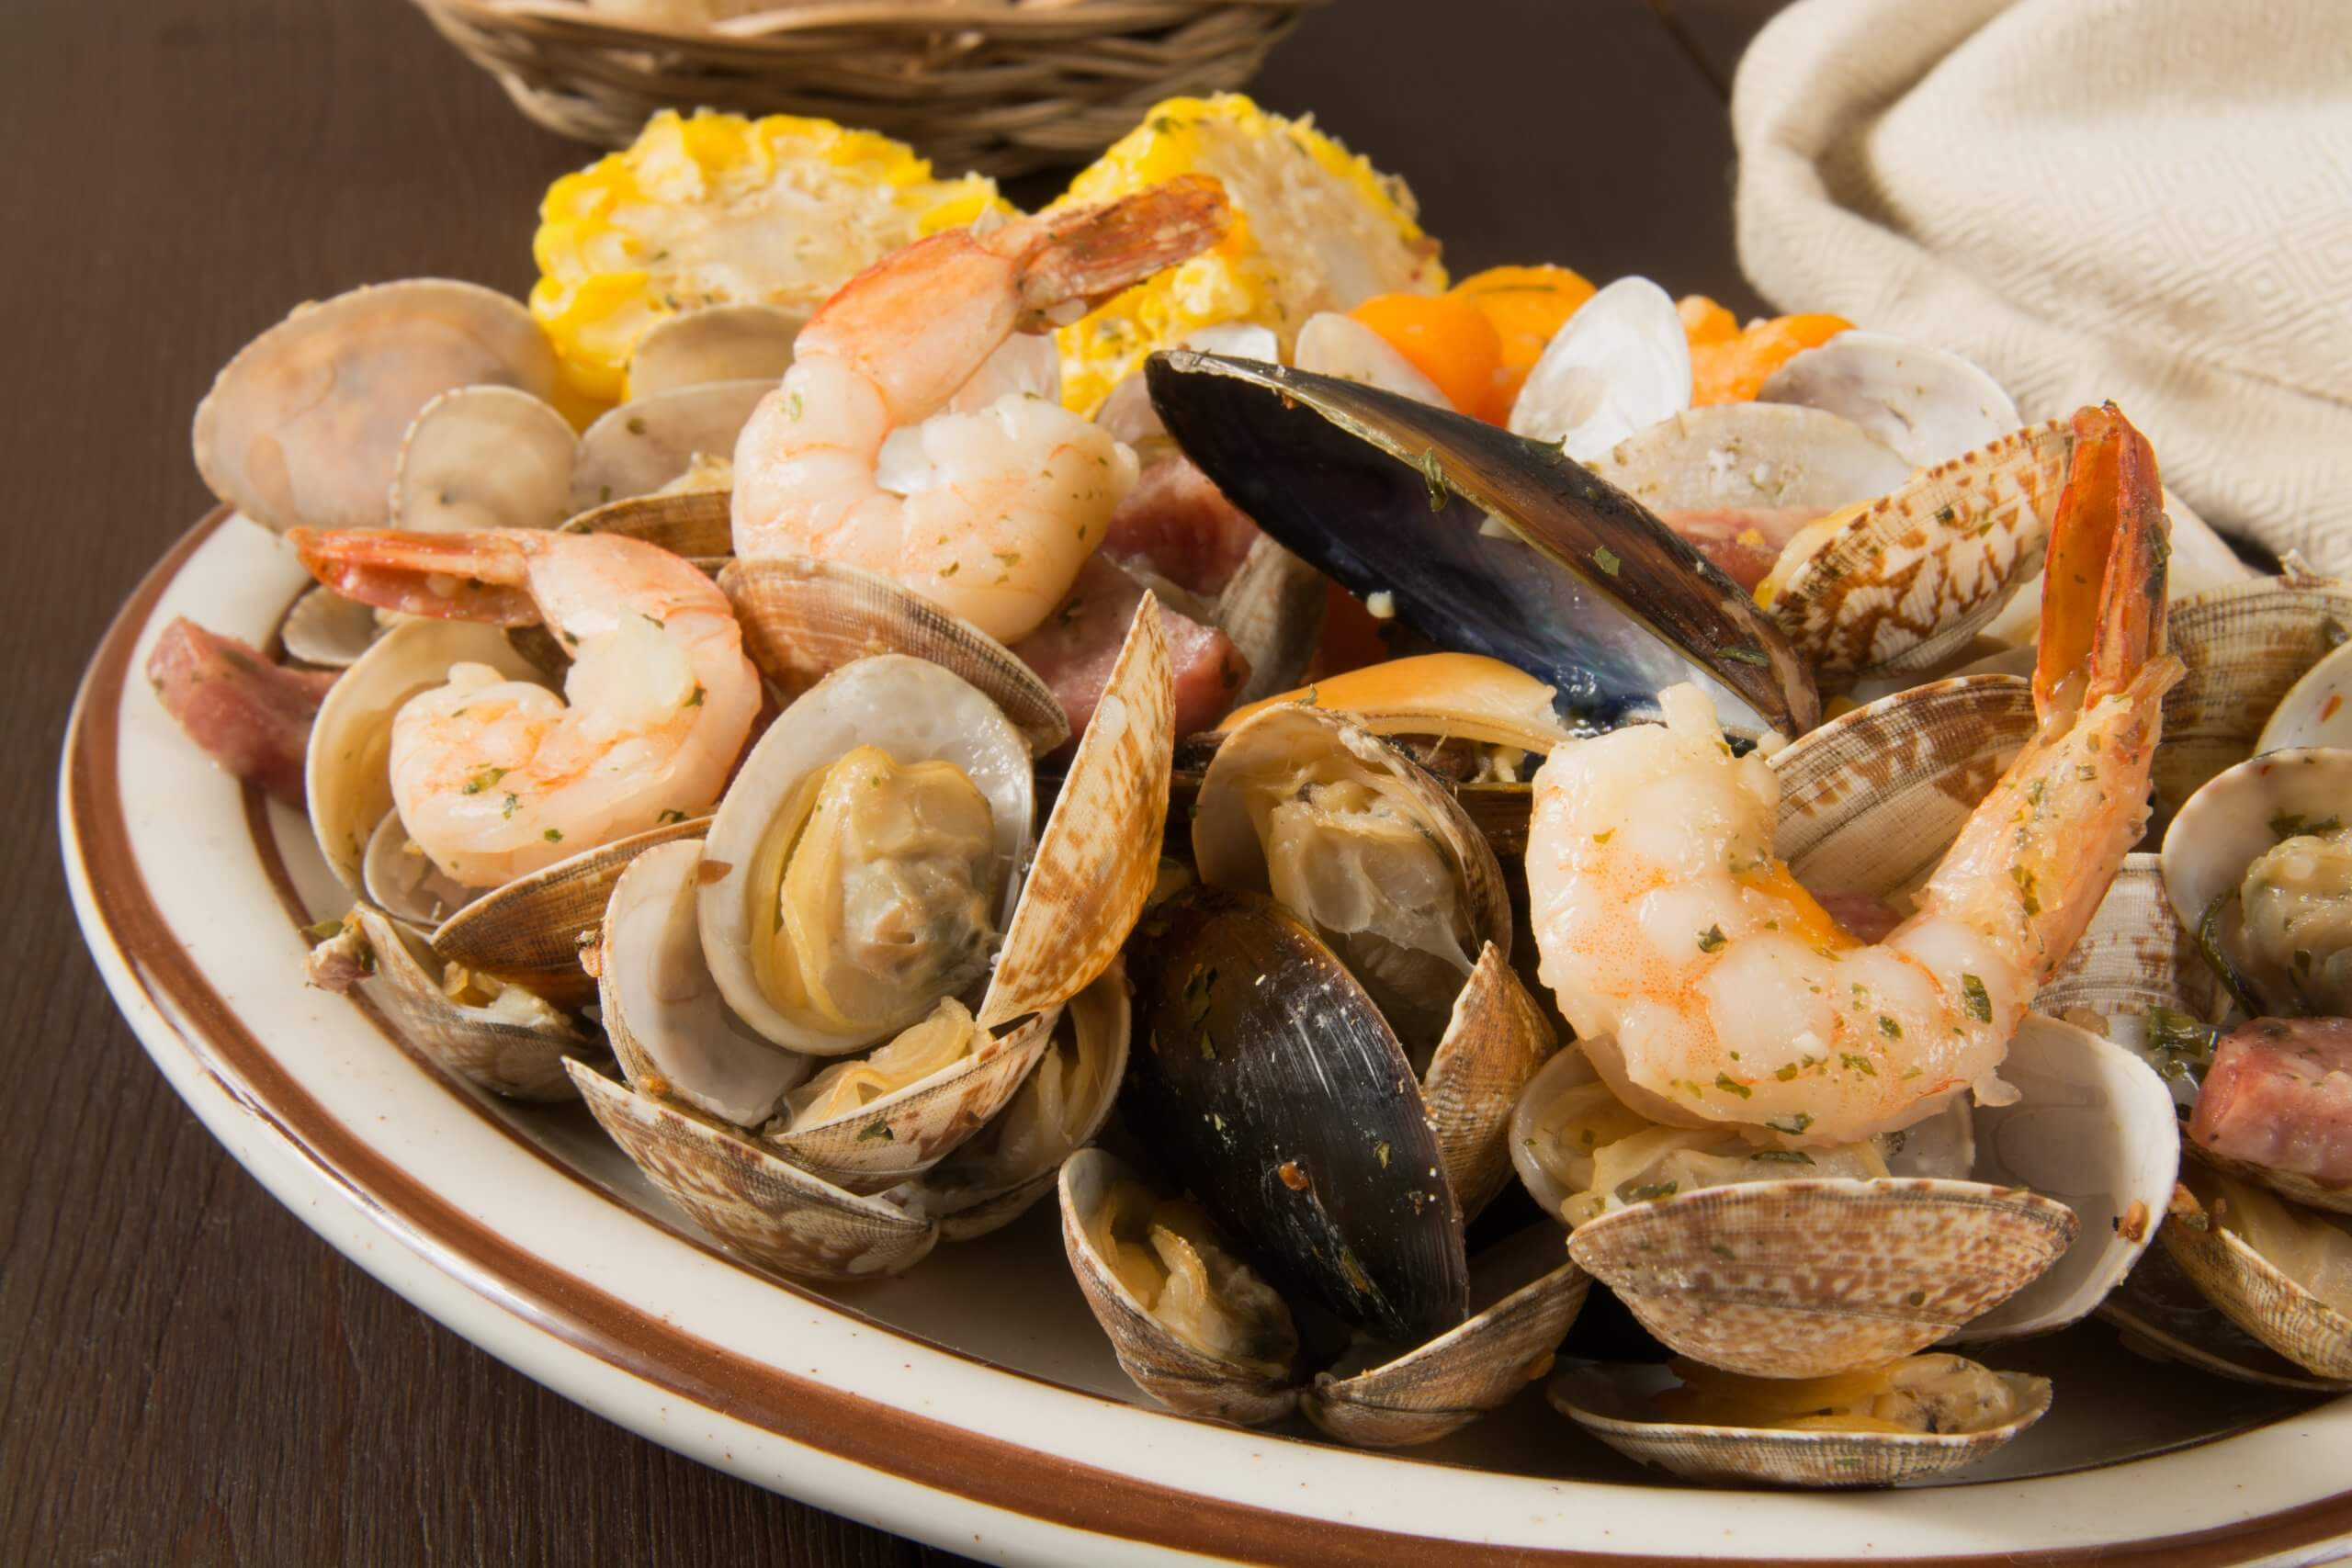 Seafood basket with shrimp clams and oysters